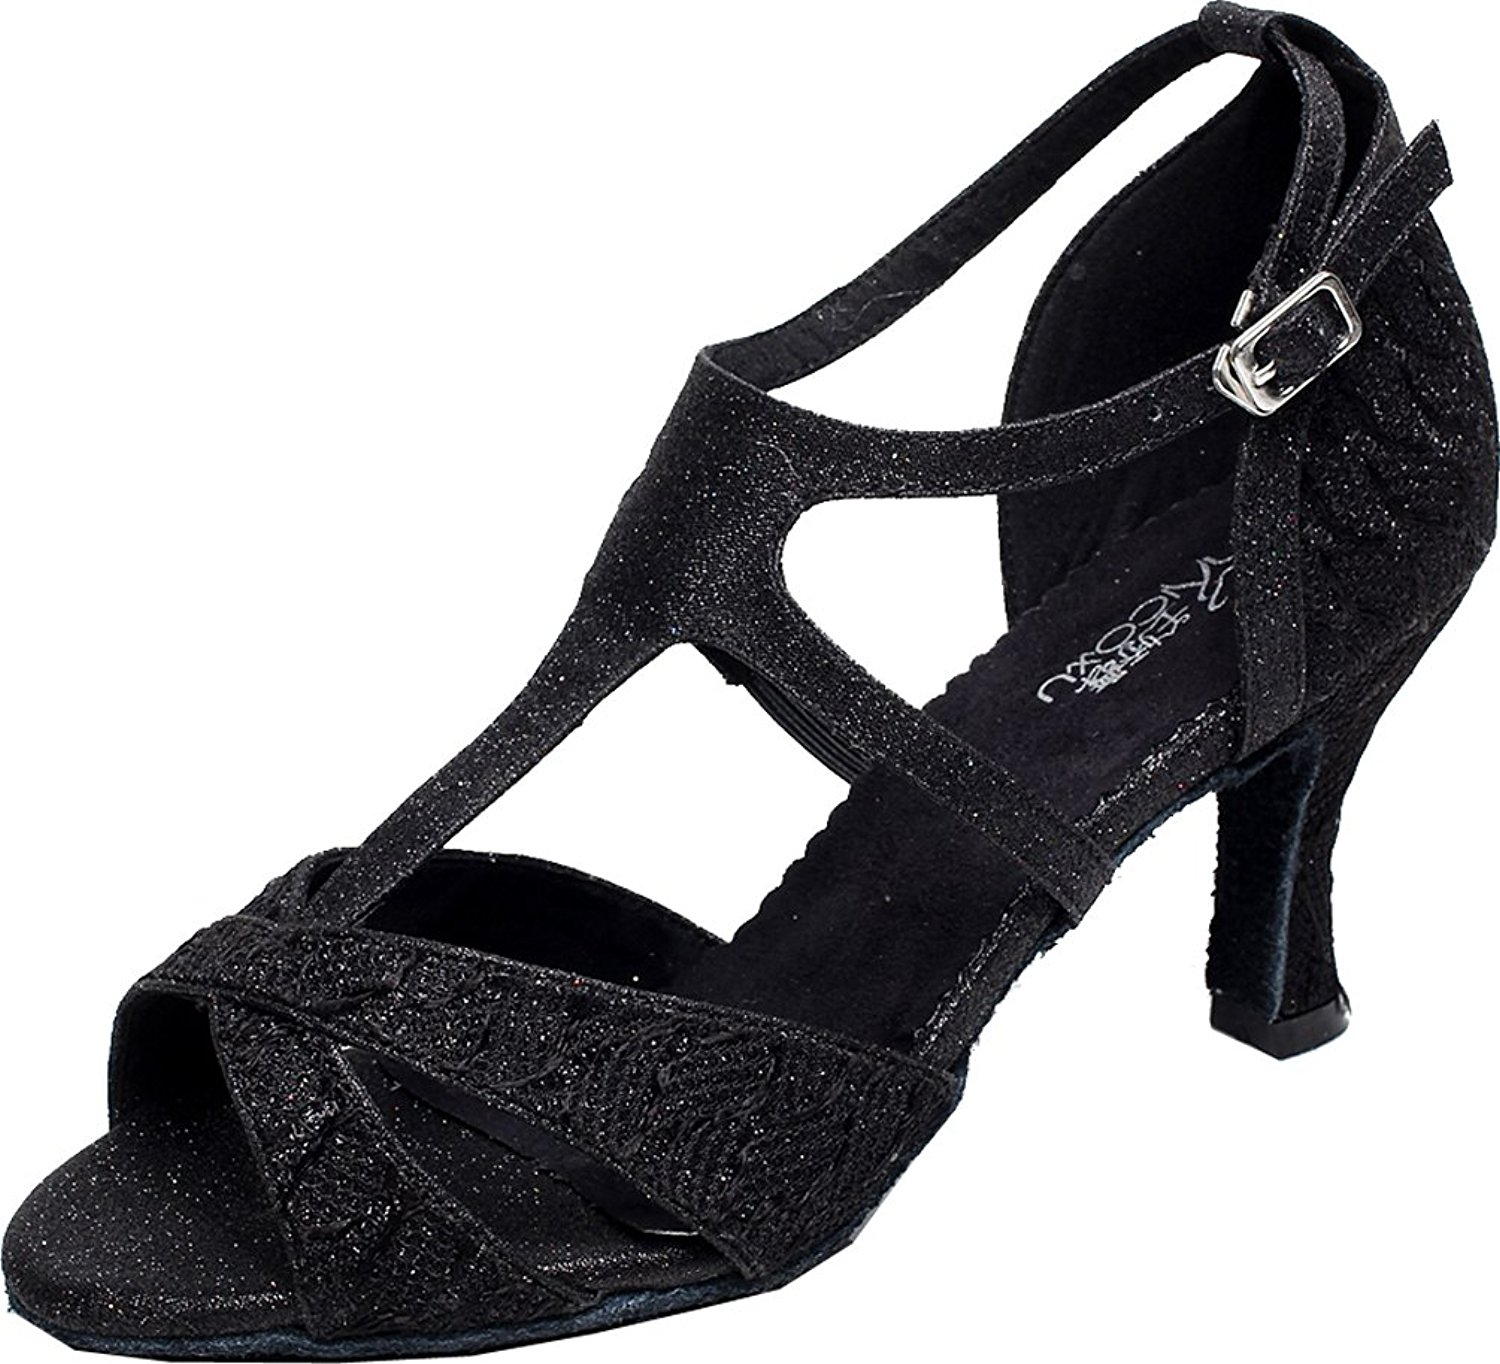 Abby Q-6208 Womens Latin Tango Cha-cha Ballroom Kitten Heel T-bar Peep-toe PU Dance-shoes